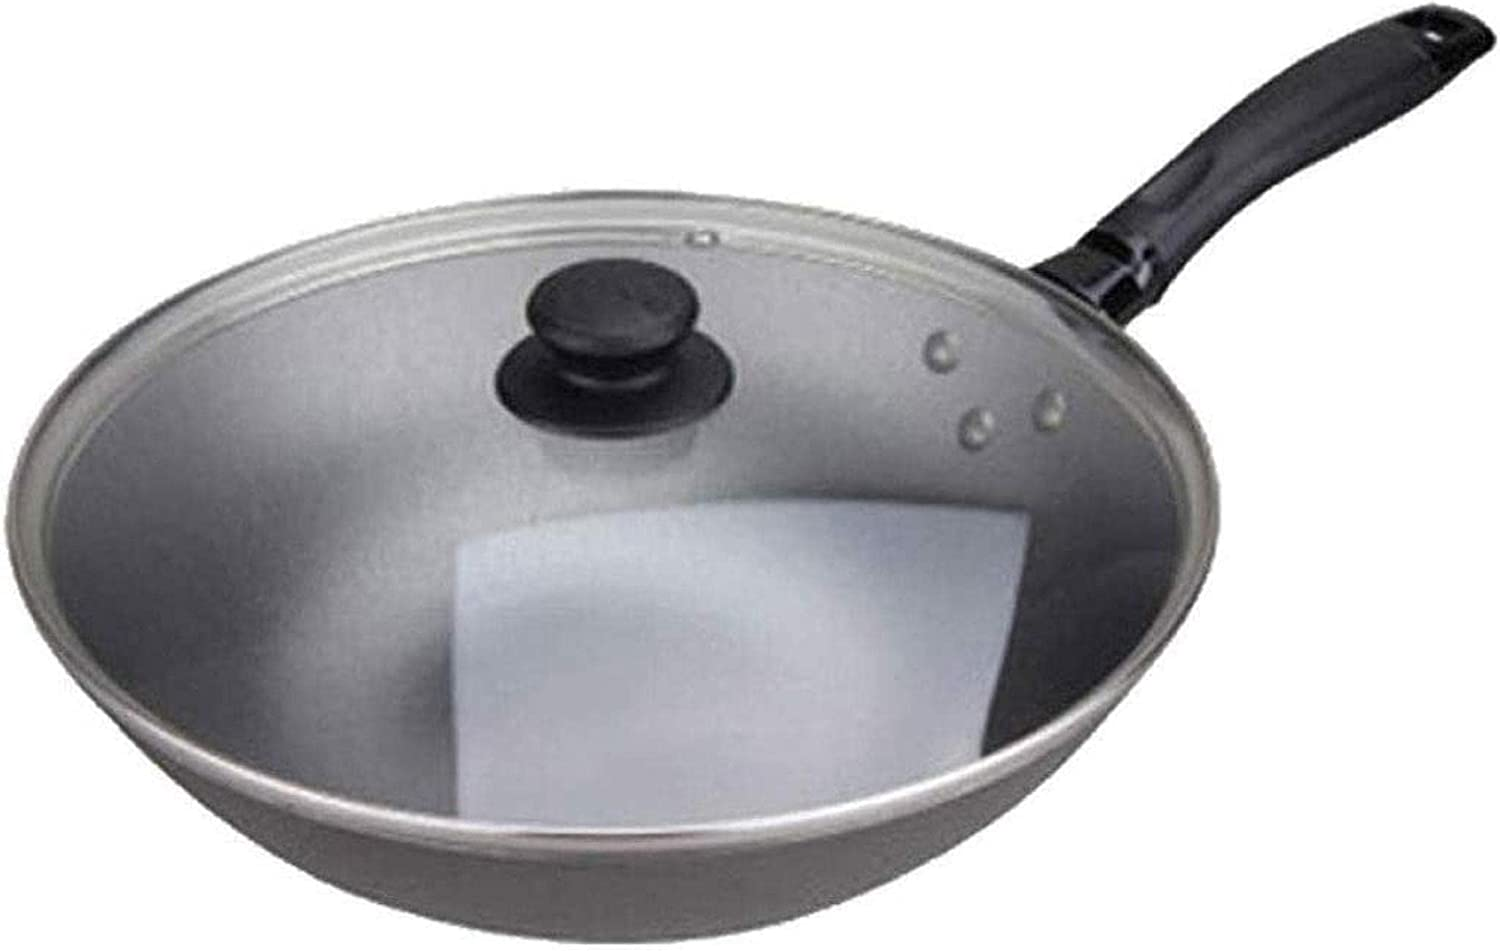 YONGYONGCHONG Wok Pan Household Cast Cookware Limited price Iron Precision Sales results No. 1